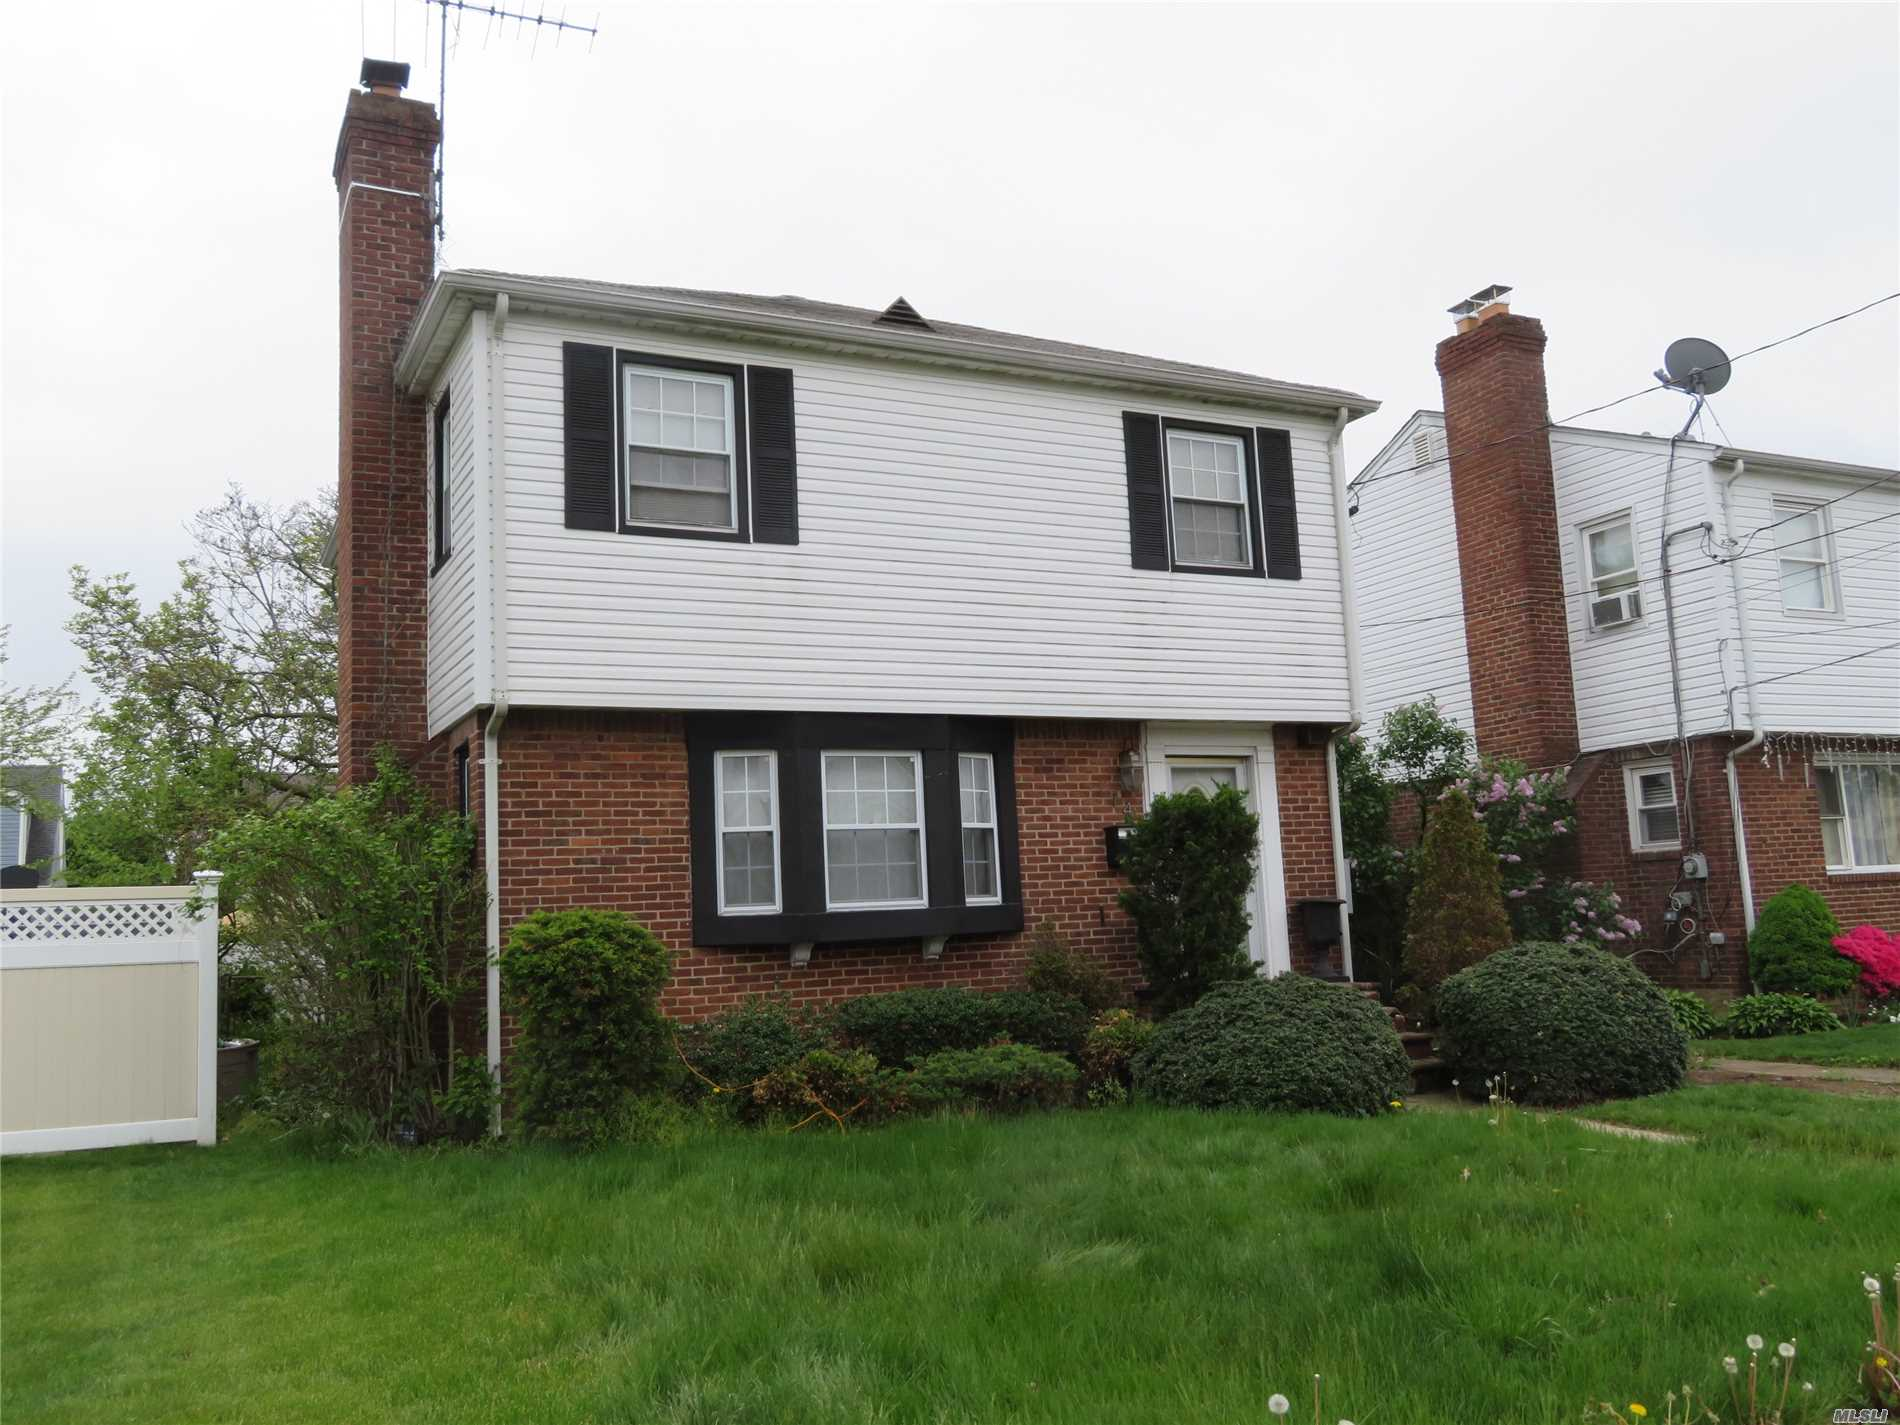 Colonial Style Home, Located Mid-Block- Offering 3 Bedrooms, Living Room W/ Fpl, Kitchen, Dining Room, Full Bath, Full Basement & Detached 1 Car Garage. Some Charming Interior Aspects With A Nice Layout- All 3 Bedrooms On 2nd Floor. Great Potential Is Offered Here Just Needs Your Tlc!